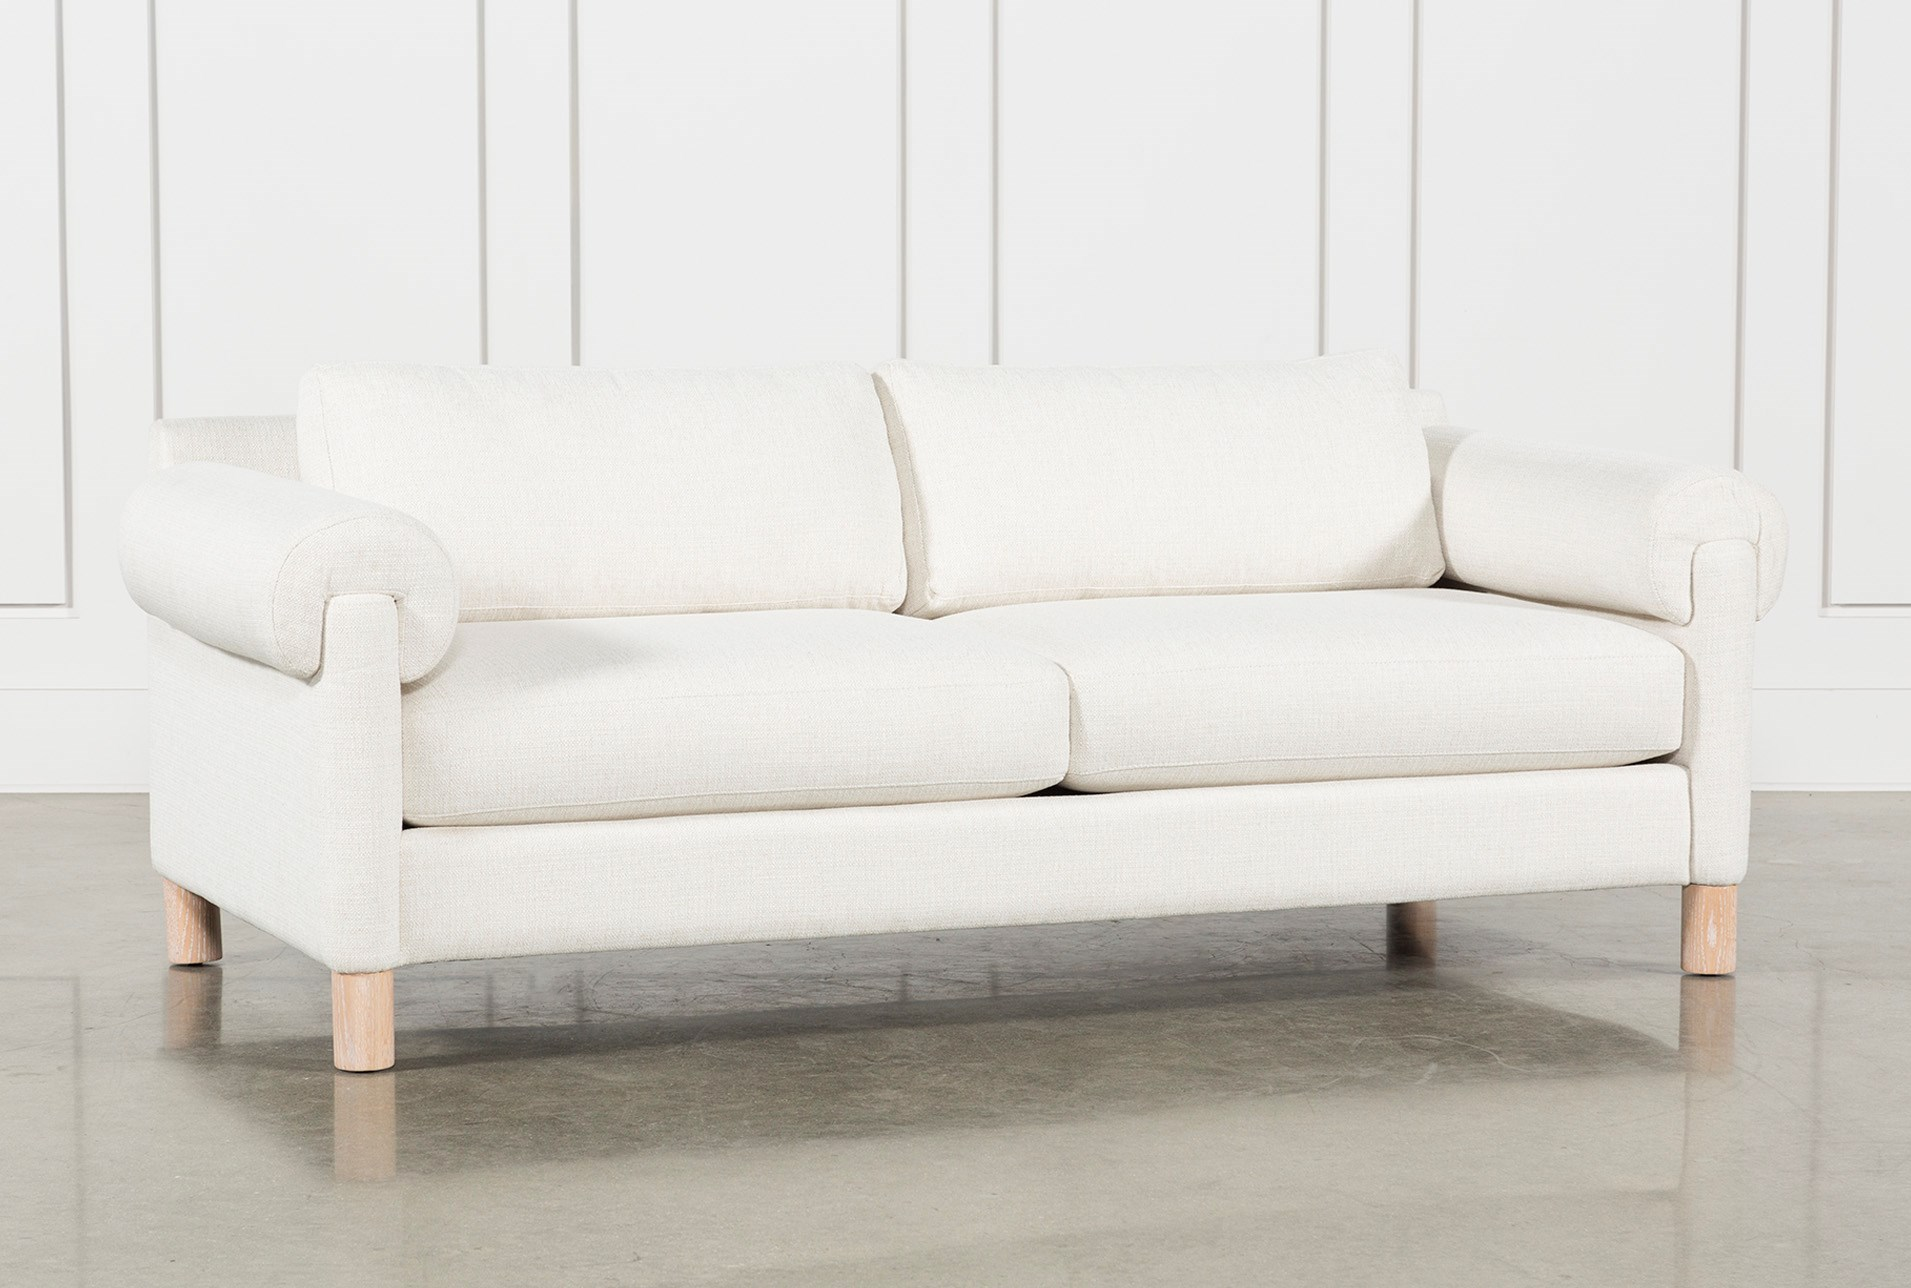 Gwen Sofa By Nate Berkus And Jeremiah B Qty 1 Has Been Successfully Added To Your Cart